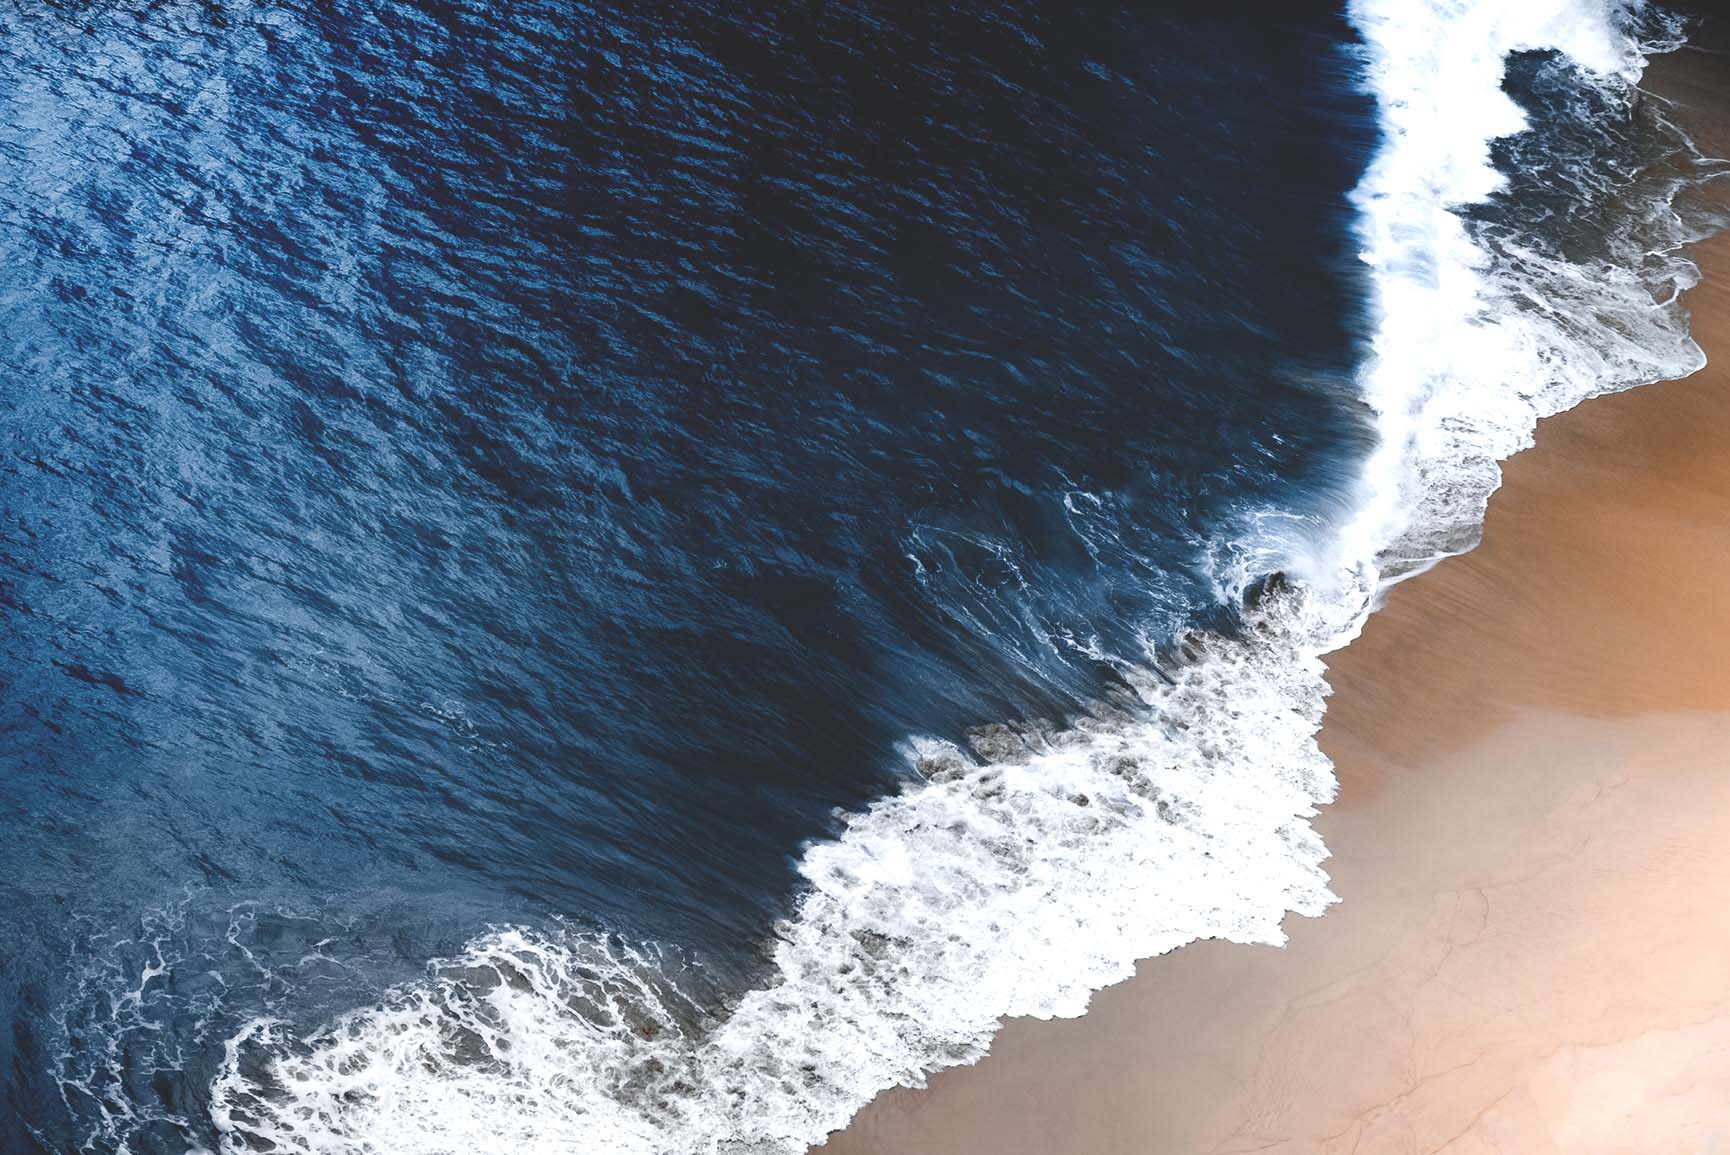 10 Refreshing Oceanic iPhone Xs Max Wallpapers